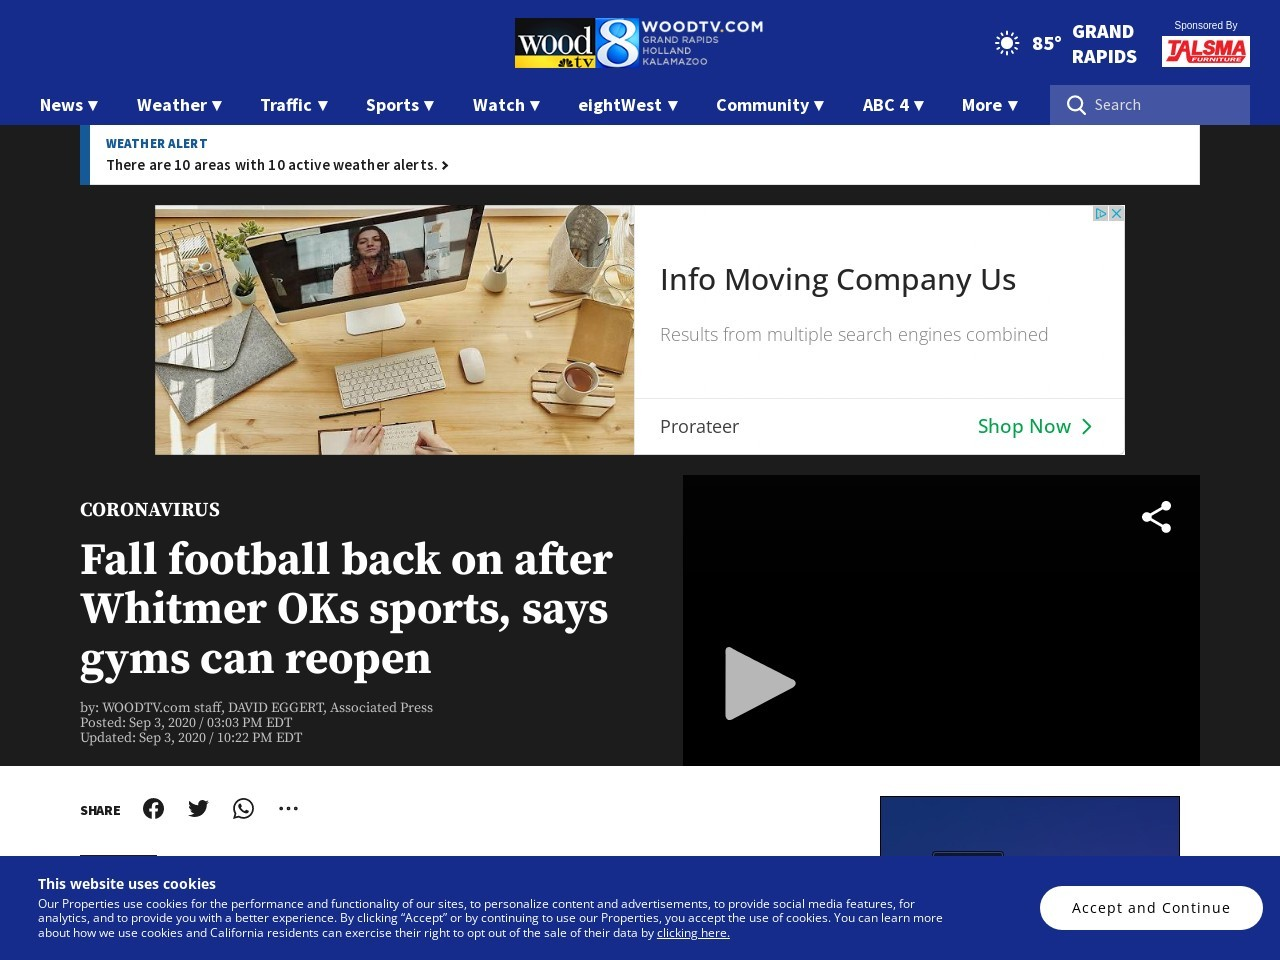 Whitmer: Gyms can reopen; sports can resume, but not advised